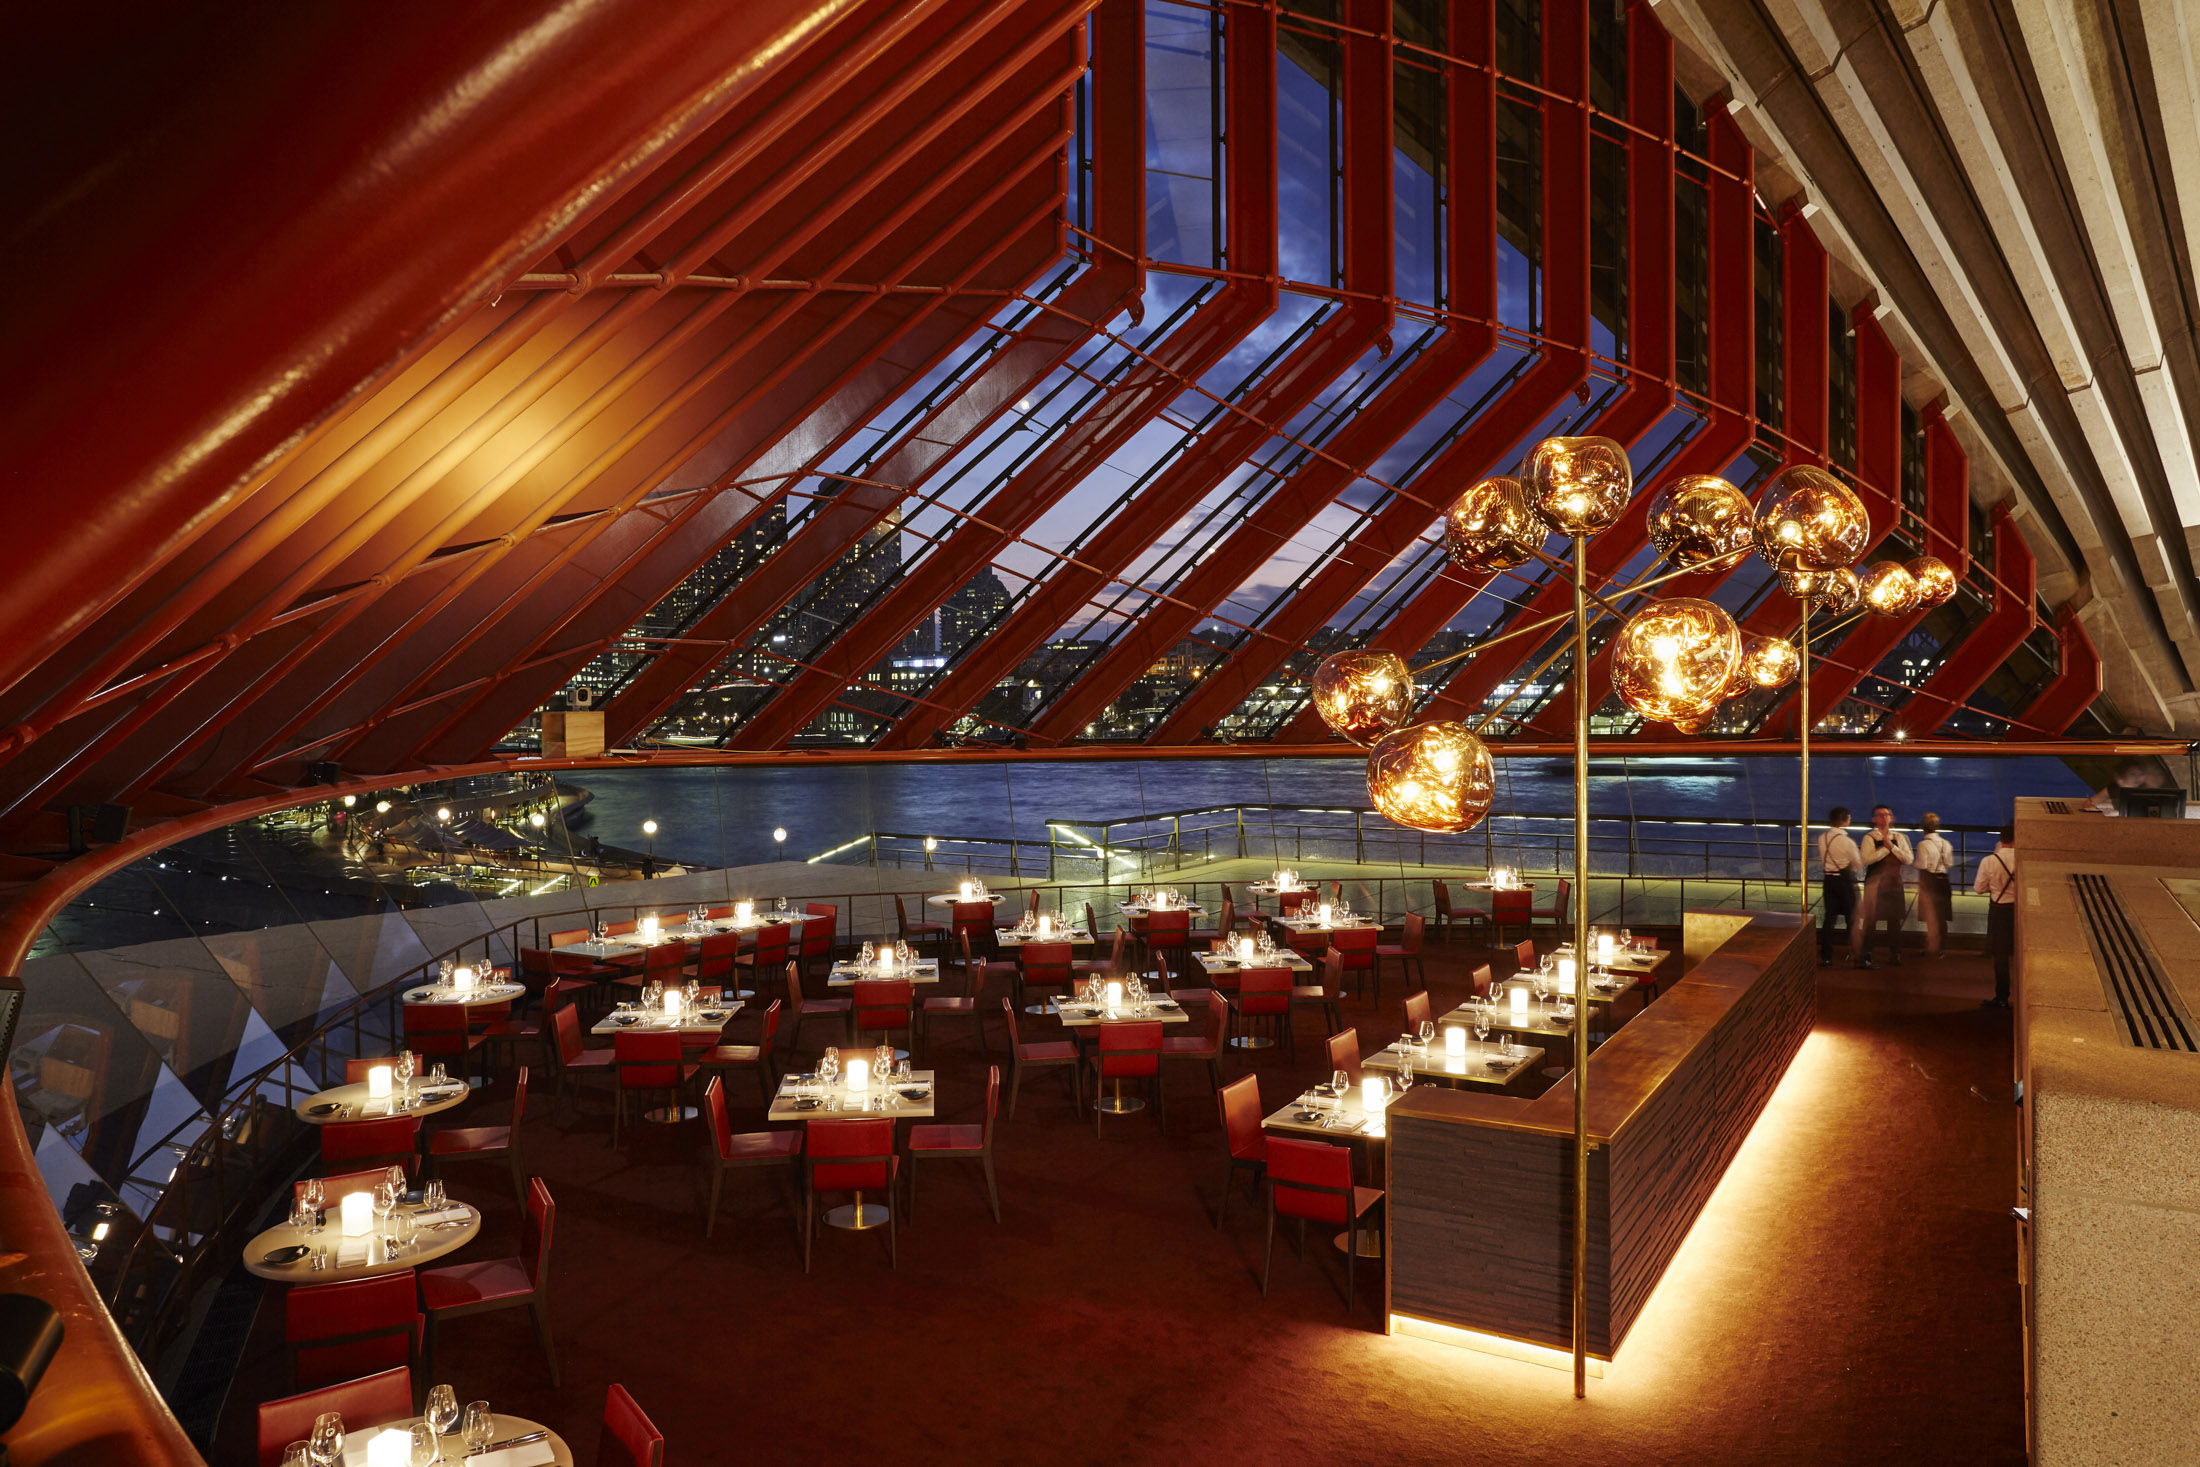 Bennelong Sydney Review: A Beautiful Restaurant at the Opera House - Bloomberg